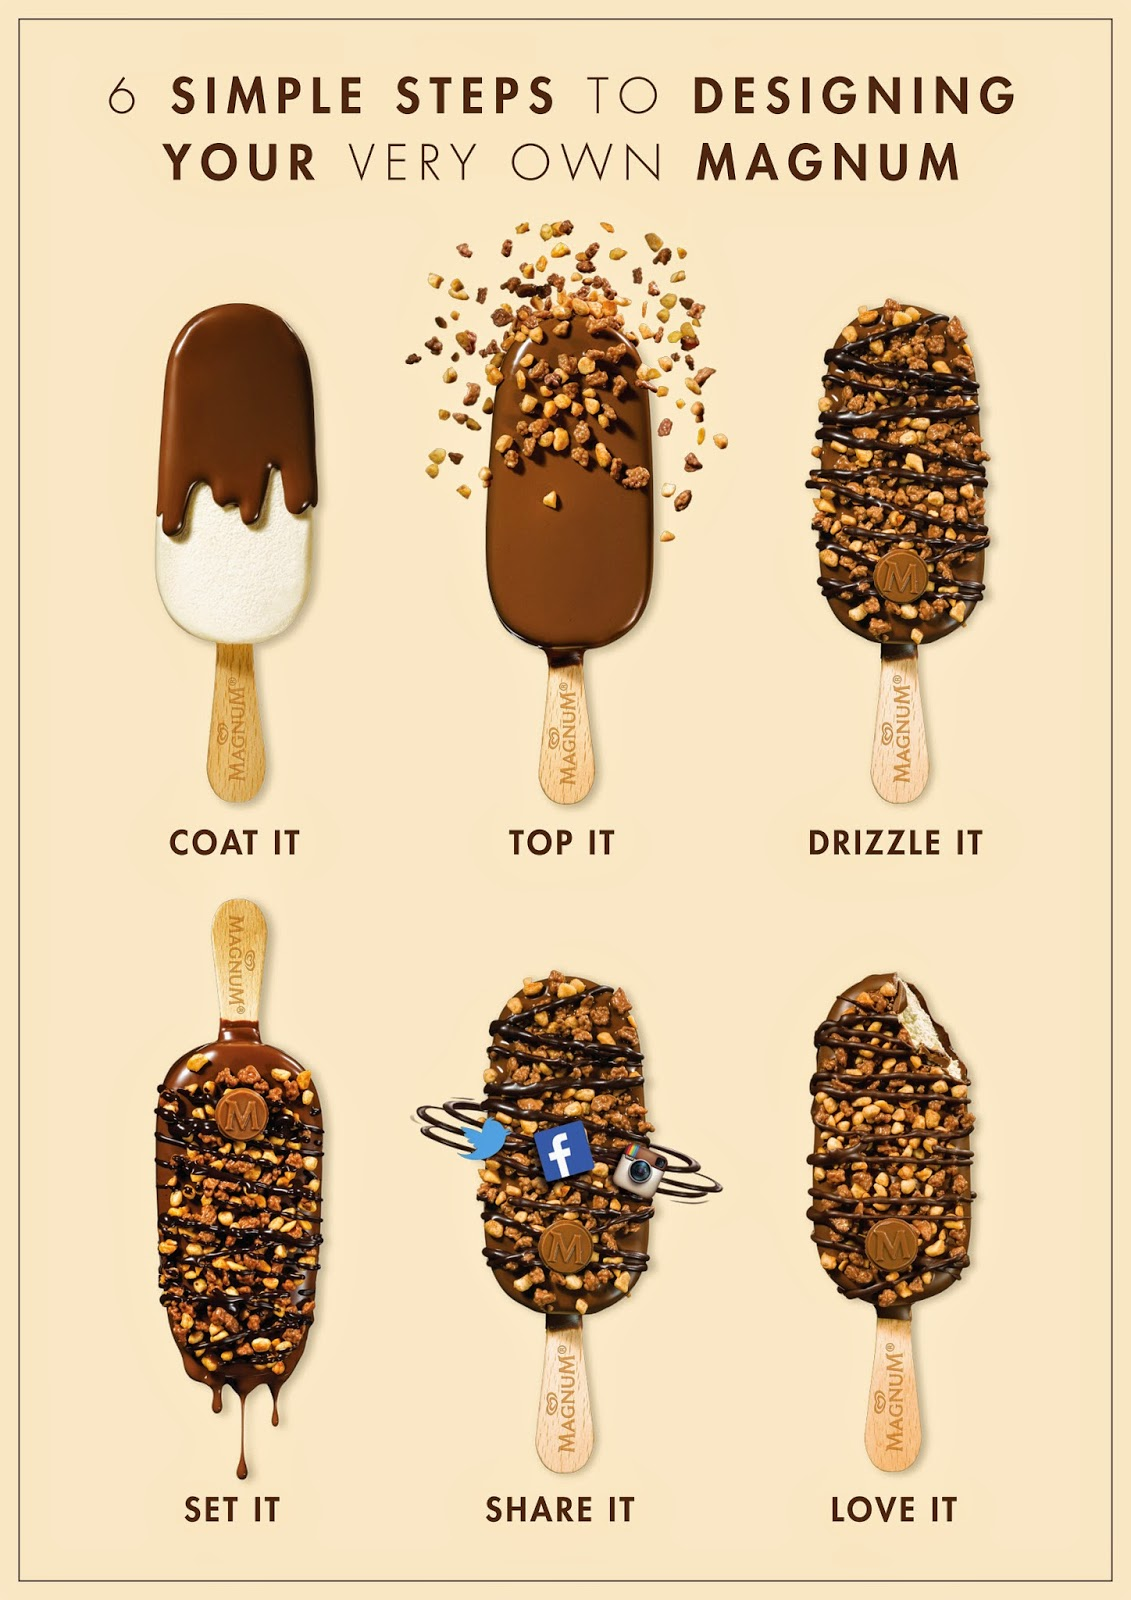 Magnum Store Karachi - how to make your own magnum